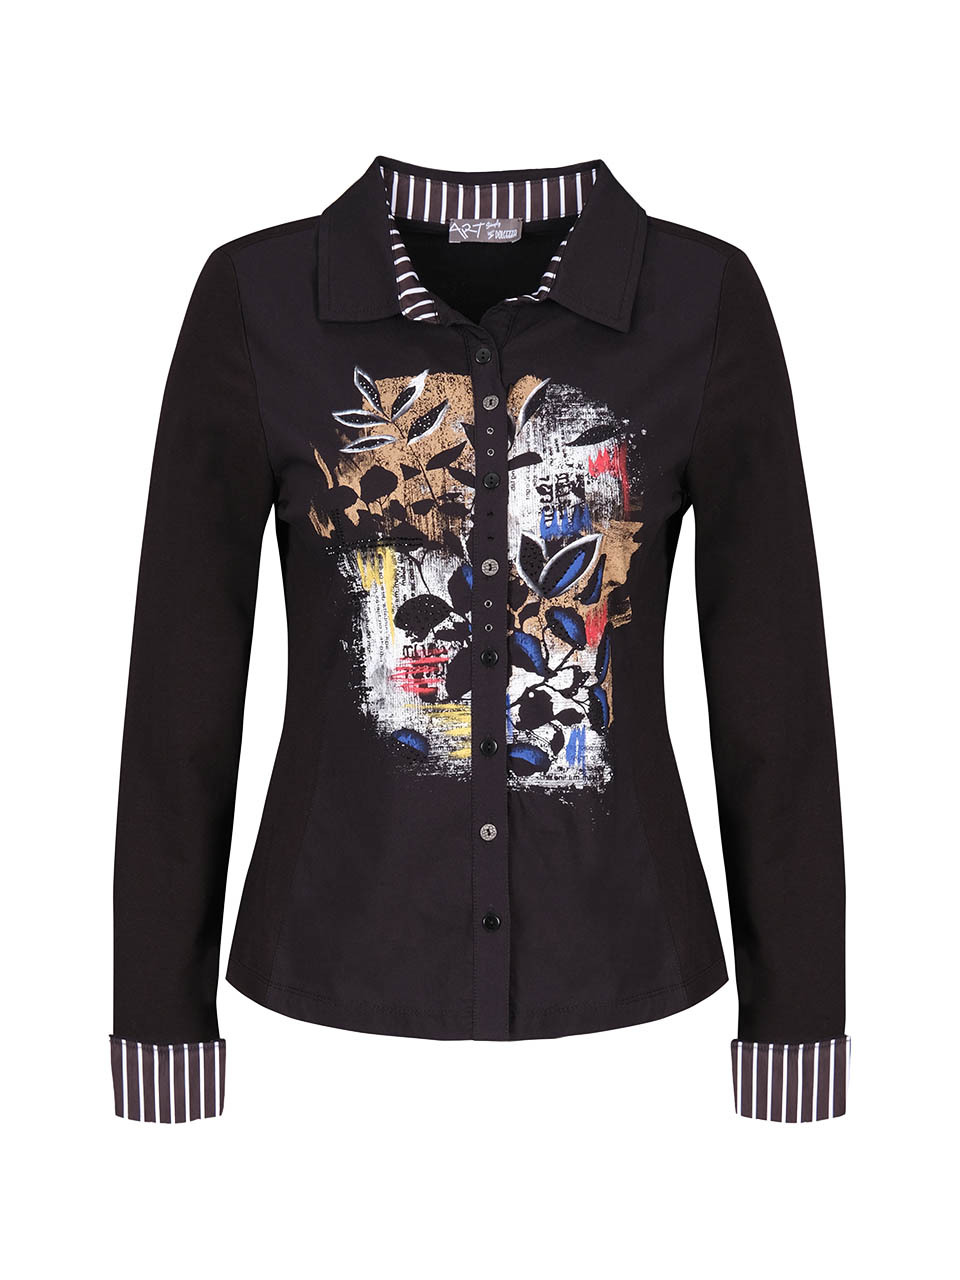 Simply Art Dolcezza: Double OO Abstract Art Buttoned Down Blouse (Few Left!)